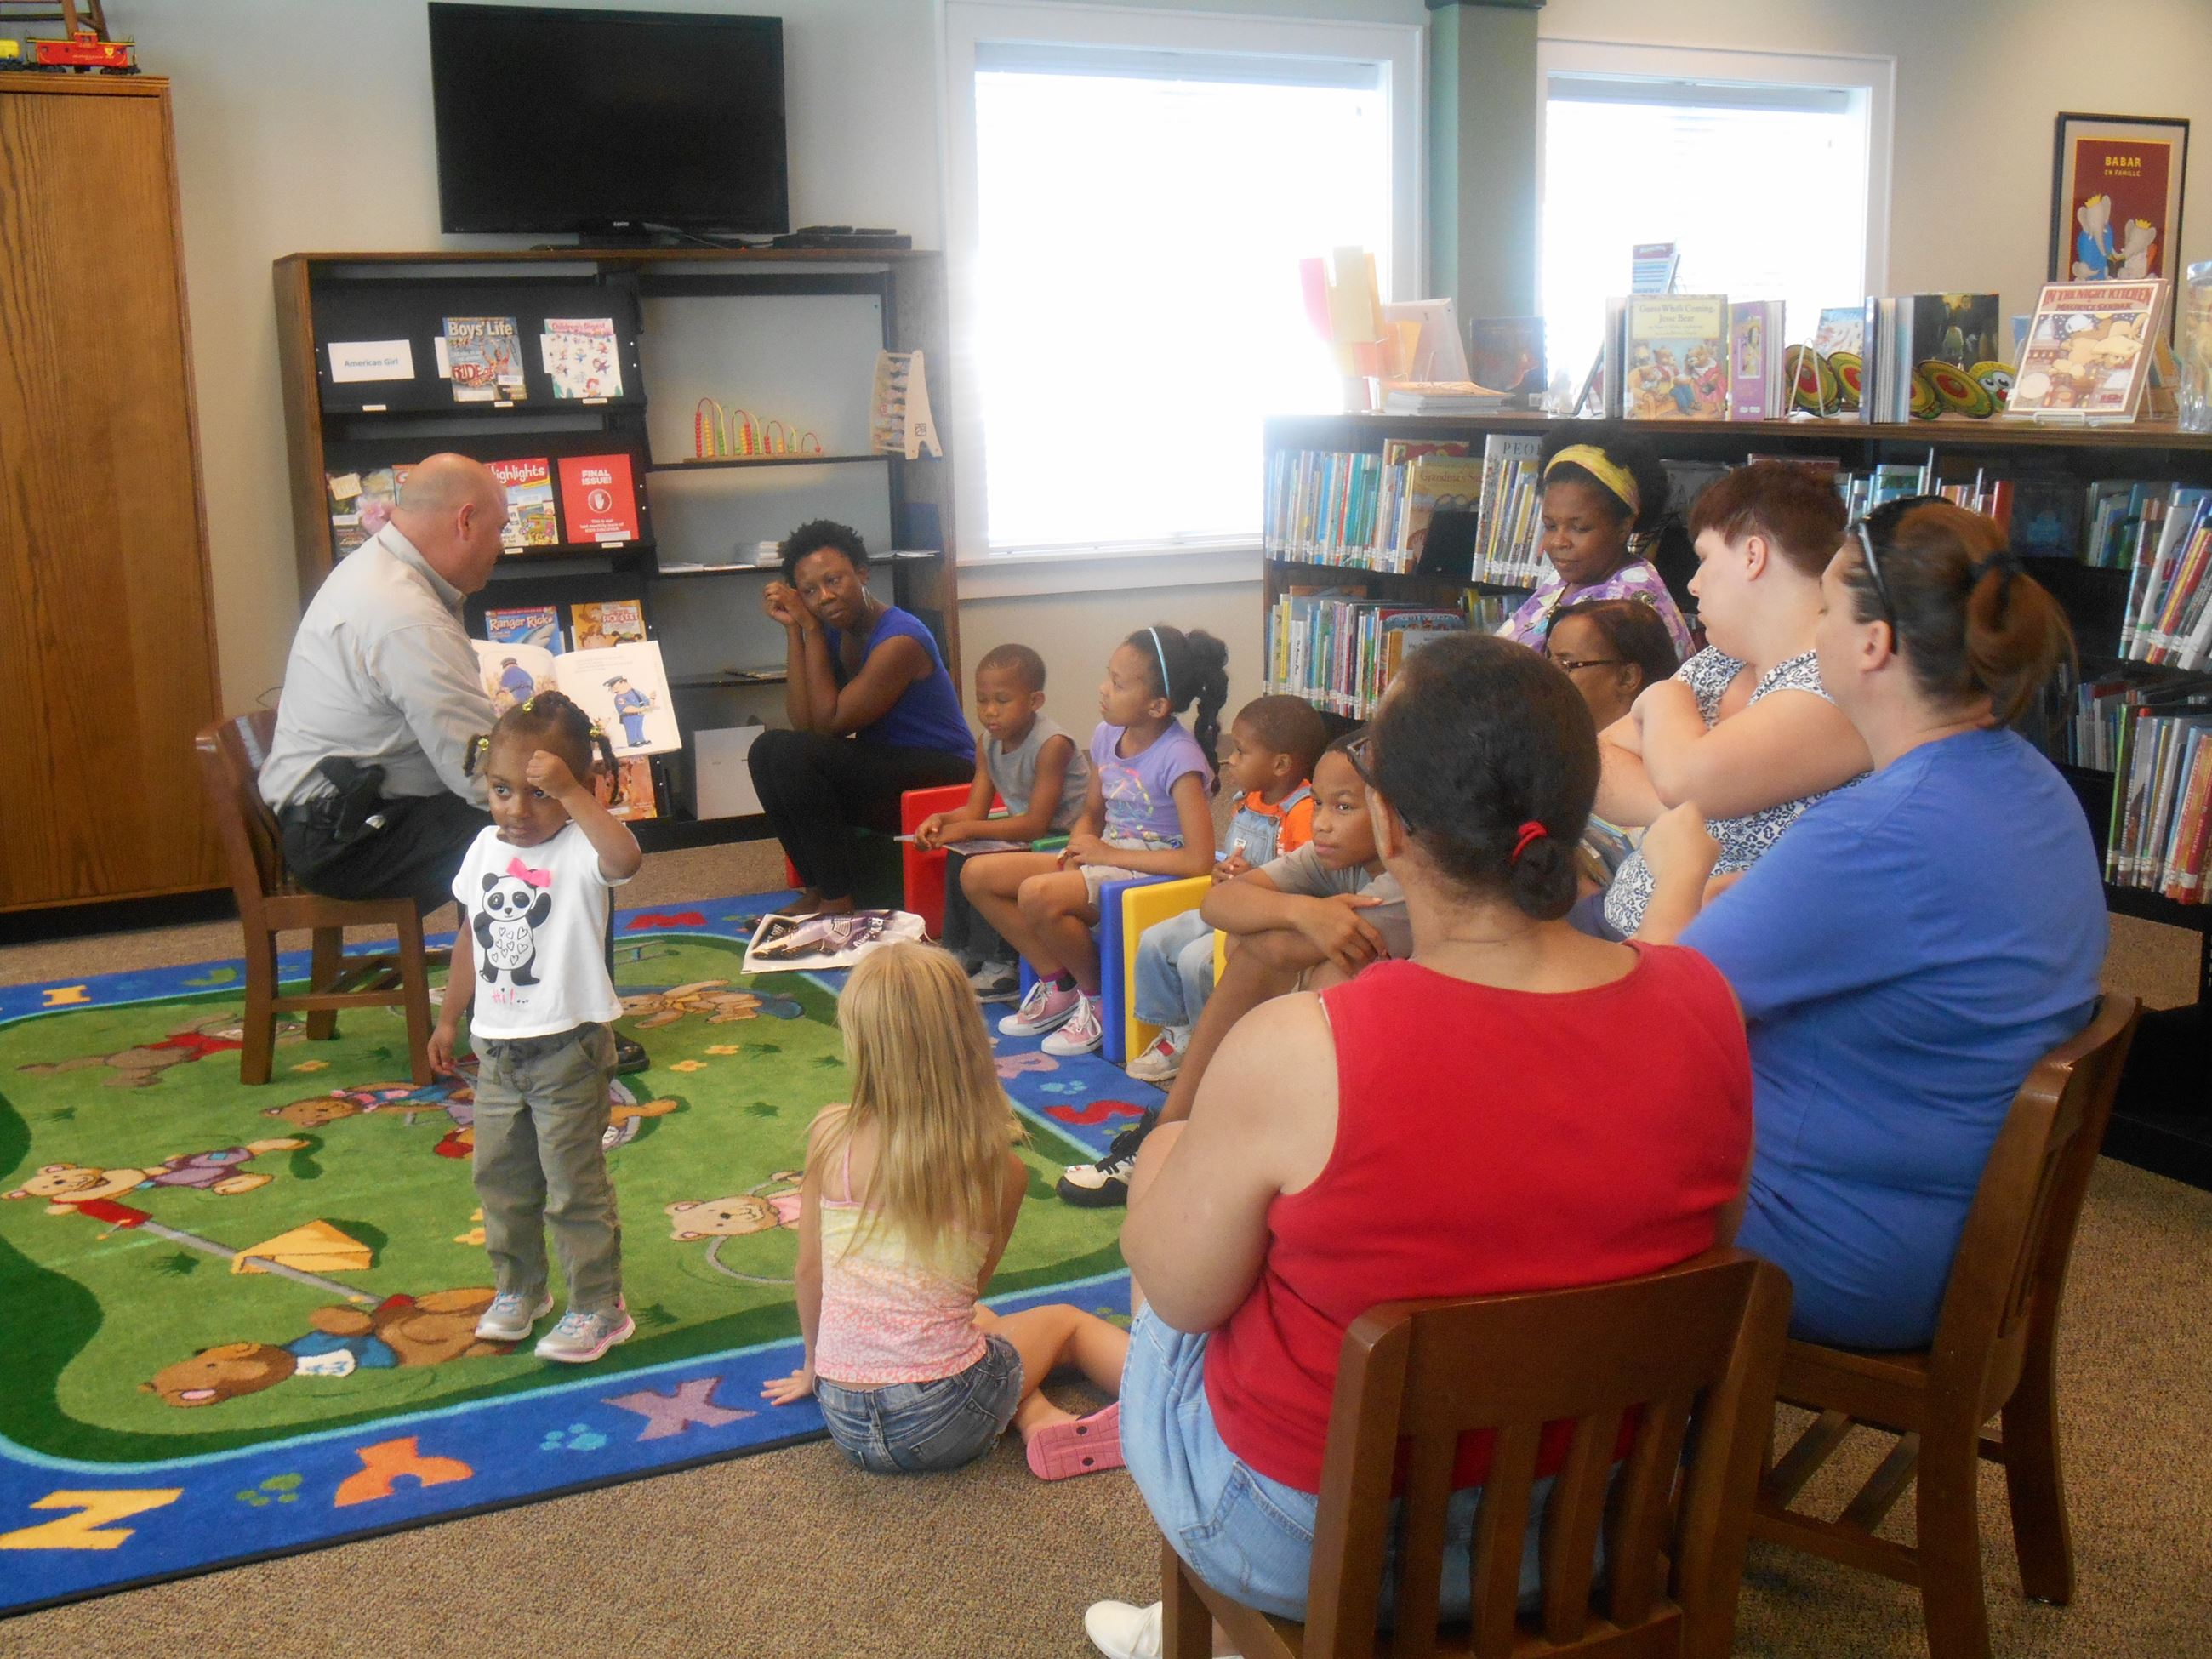 Police Officer reading to children